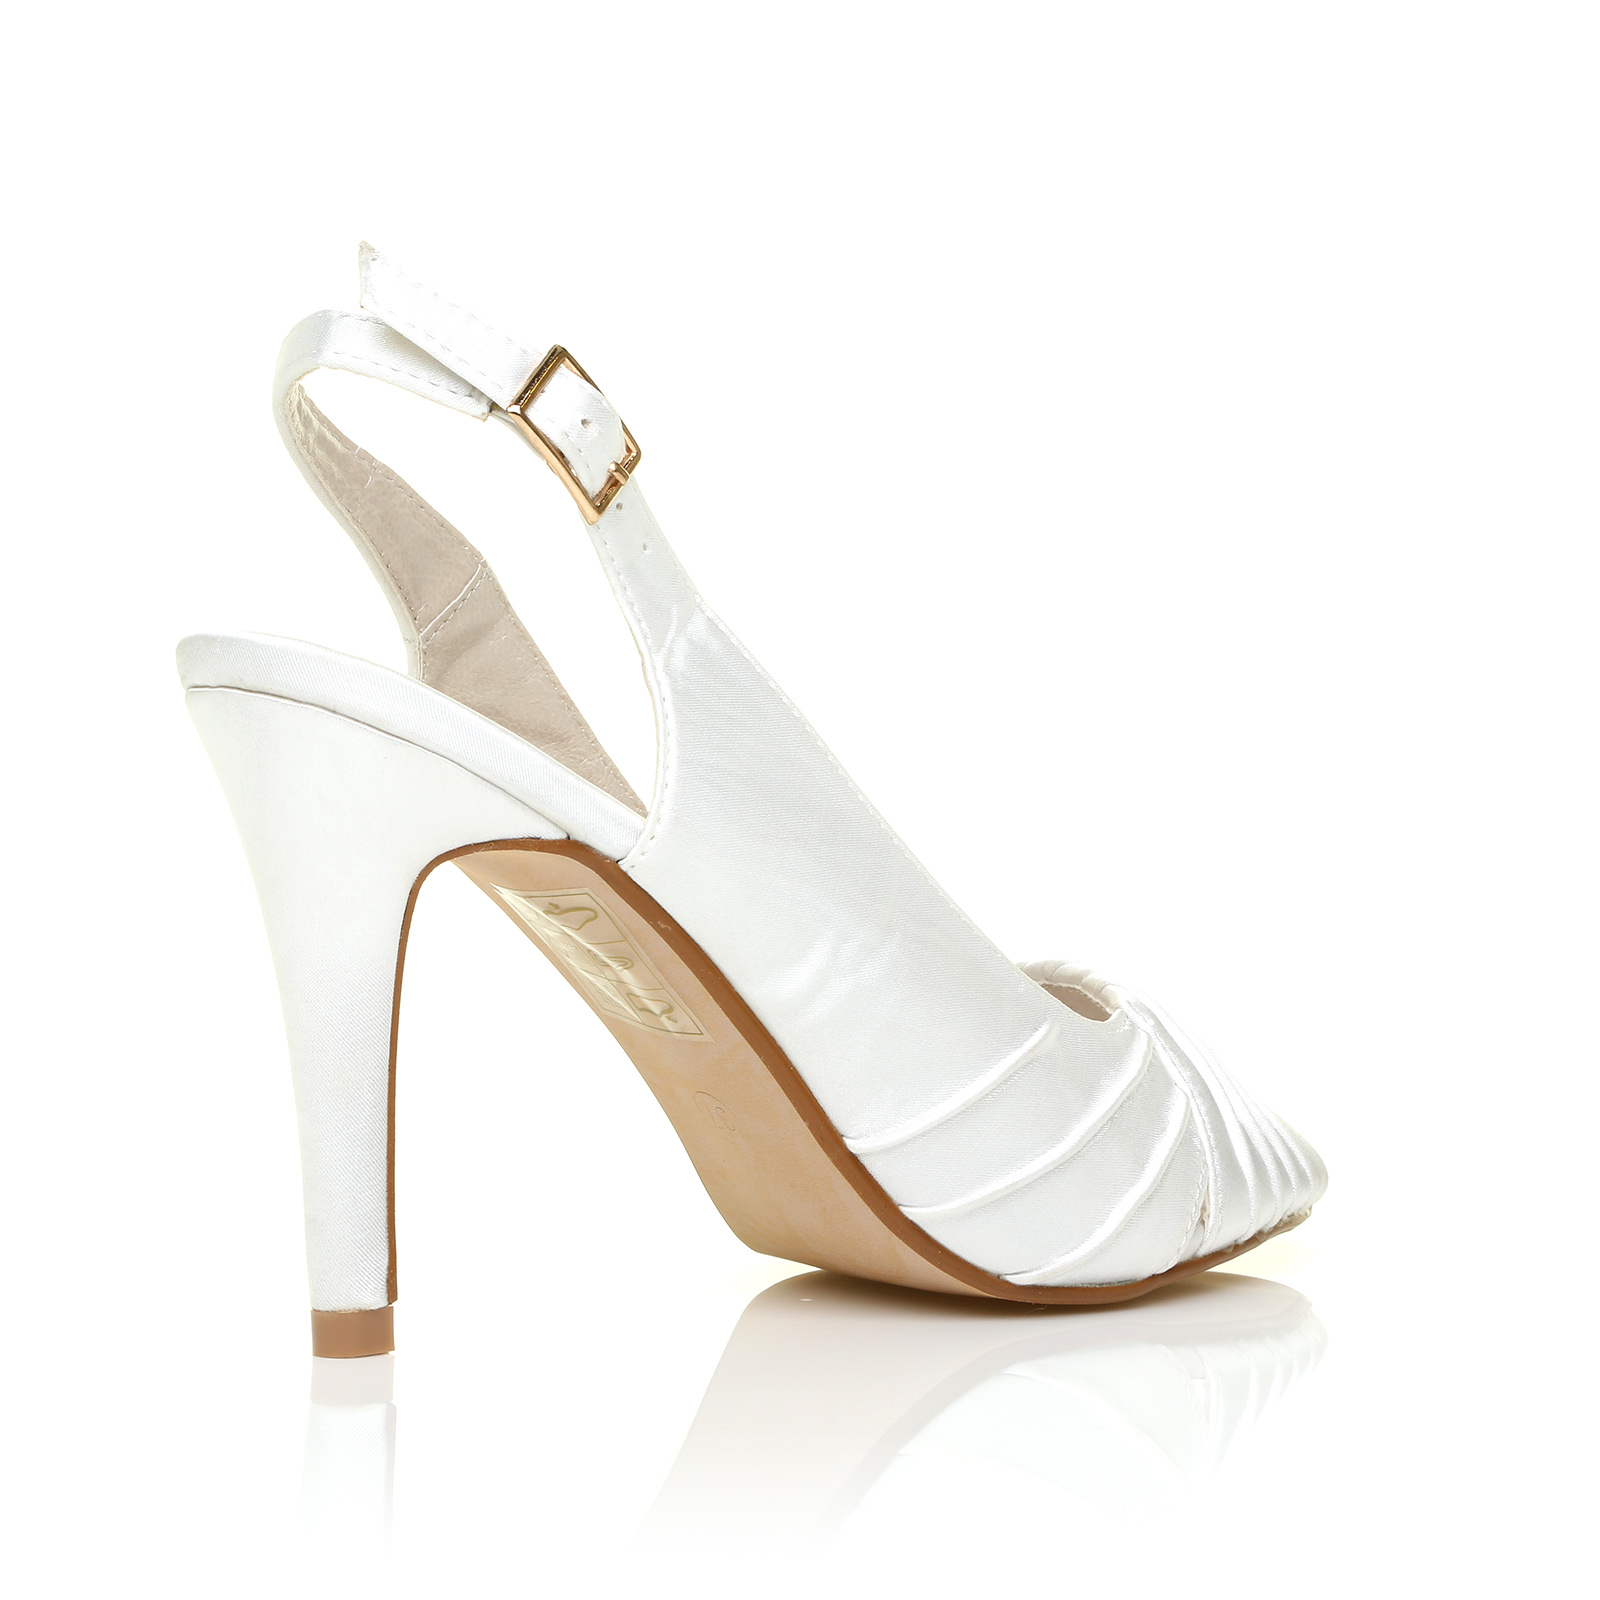 c6e33ac665c Chloe White Satin Stiletto High Heel Slingback Bridal PEEP Toe Shoes ...